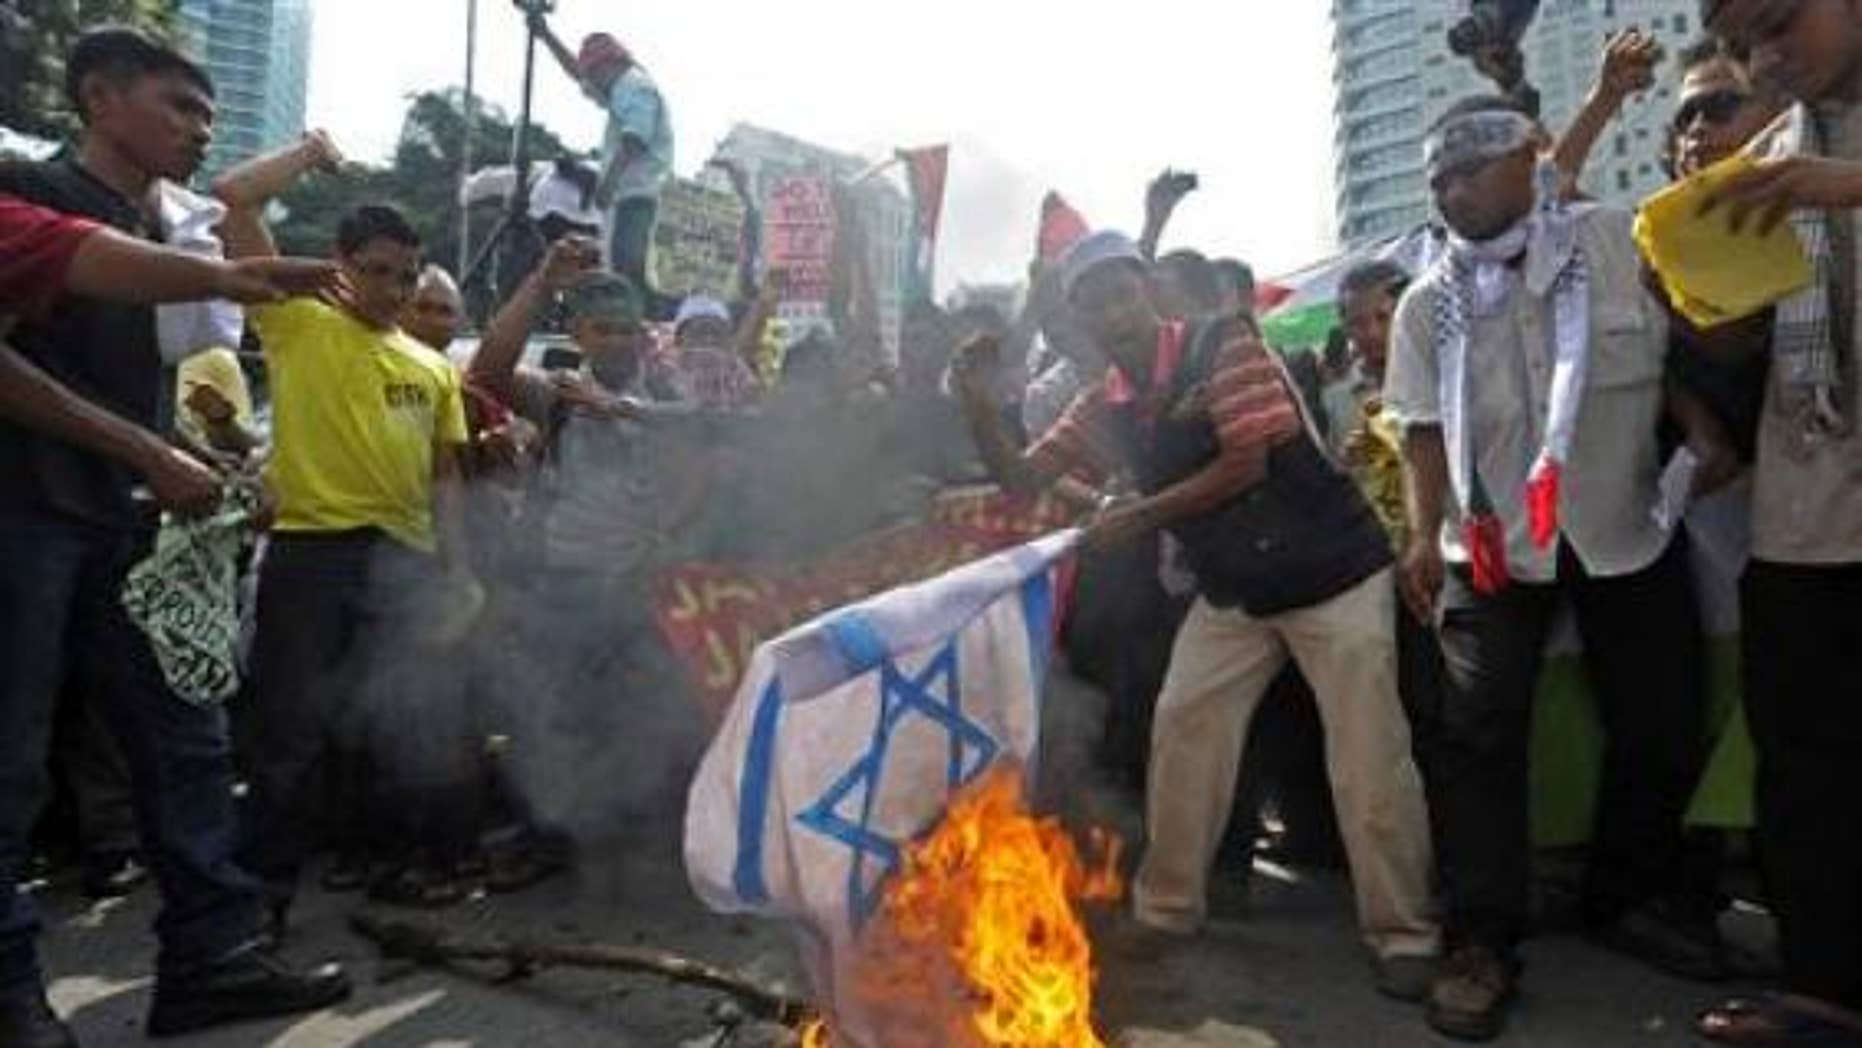 Friday: In Malaysia, a demonstrator set fire to an Israeli national flag near the U.S. embassy to protest Israel's raid of a Gaza-bound flotilla.